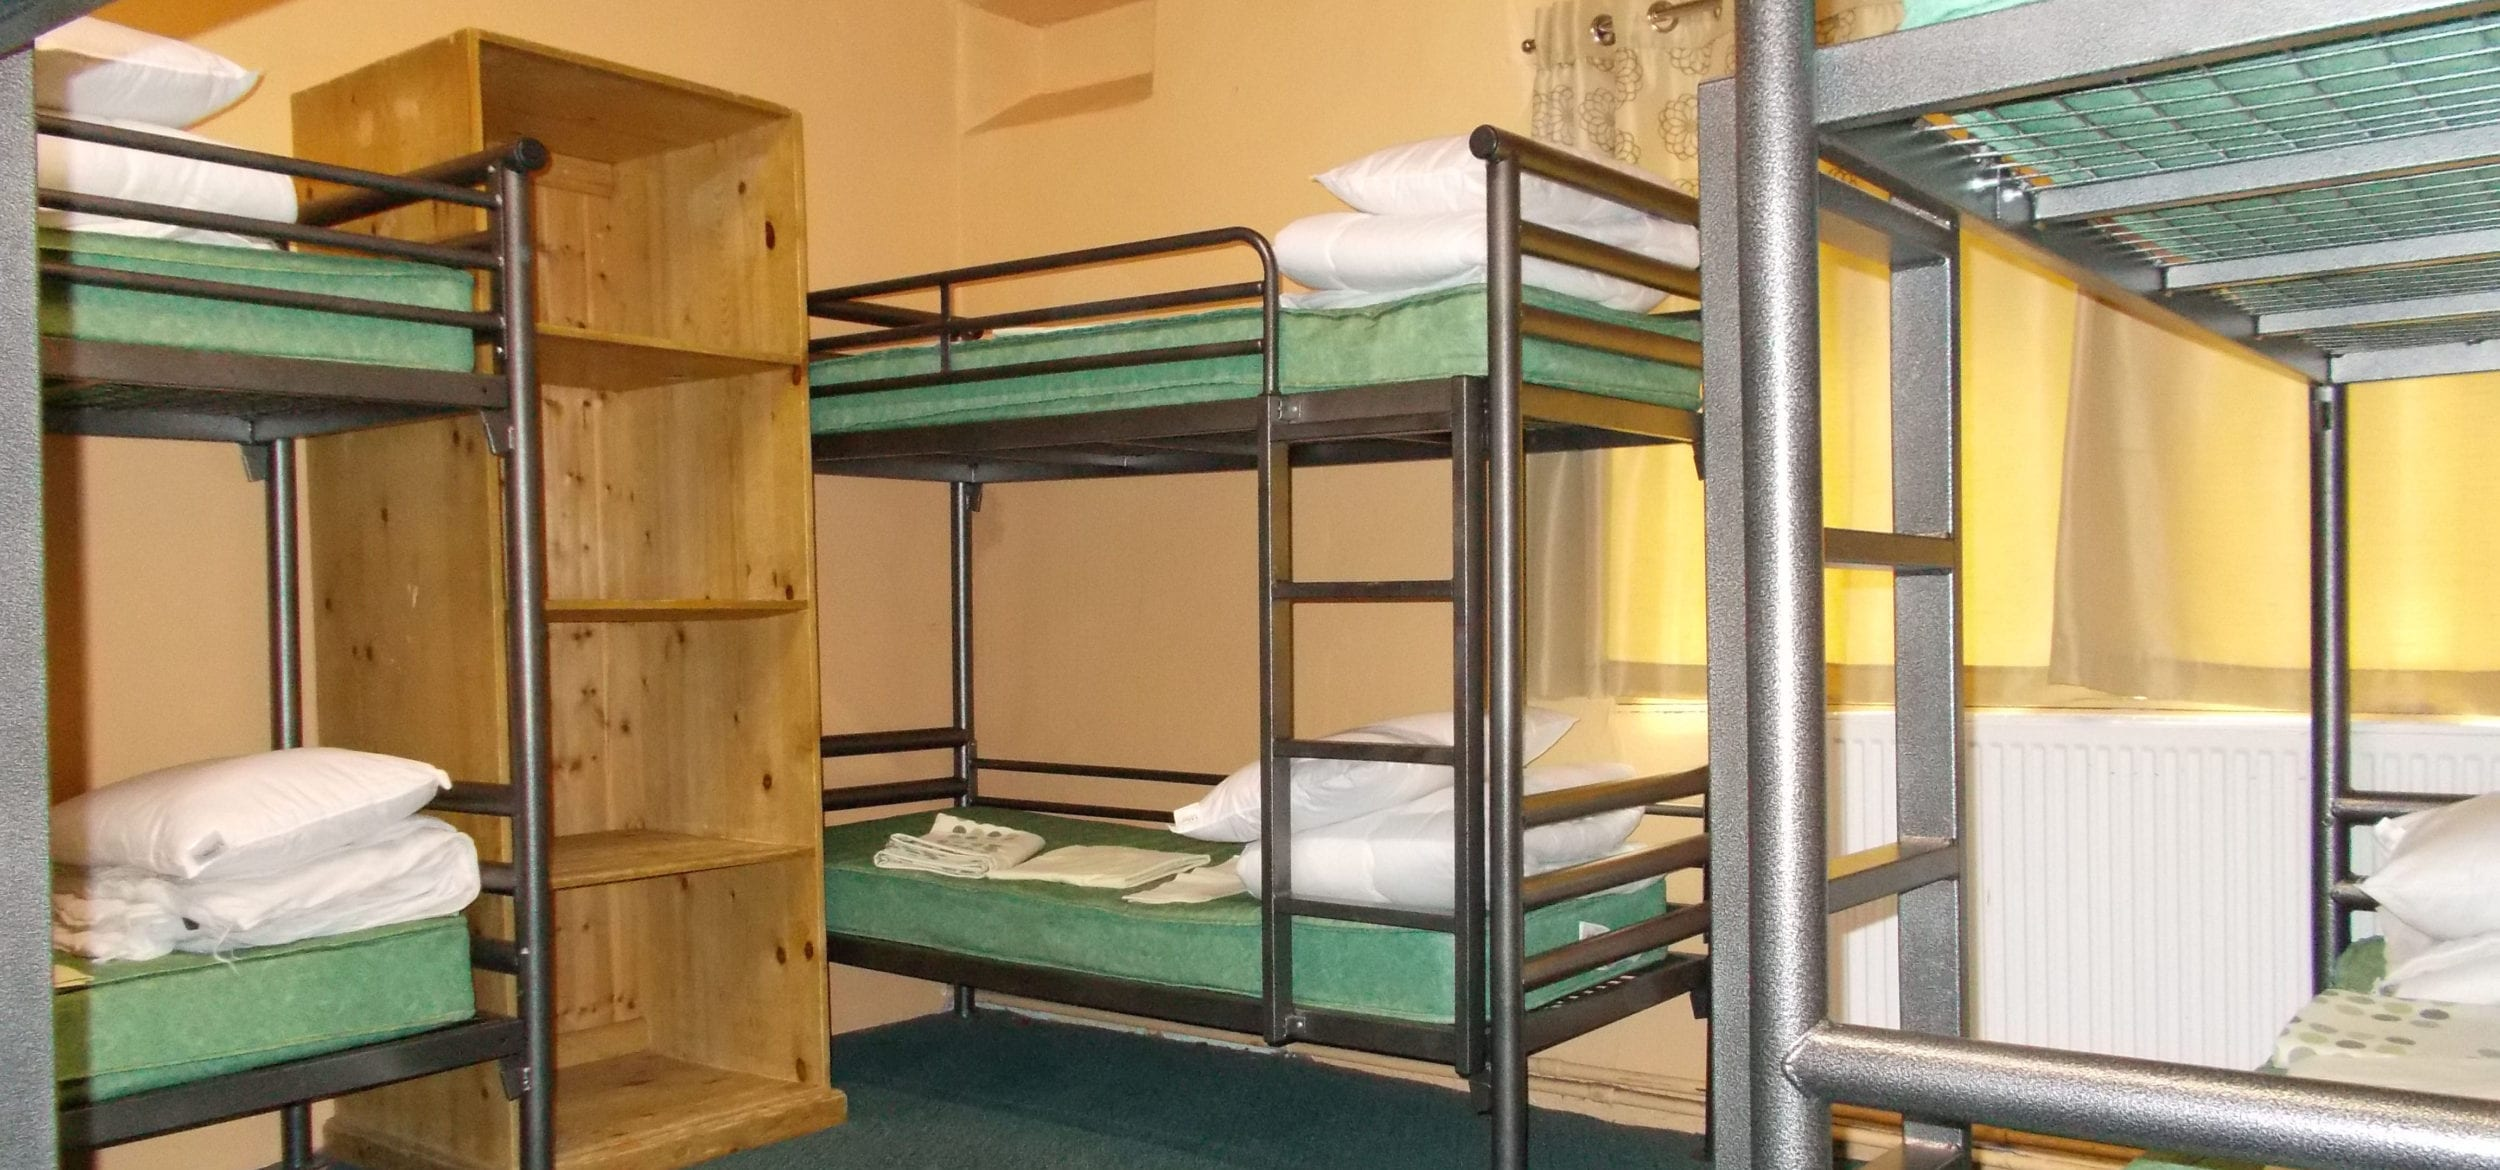 Bunks at Hagg Farm in the Peak District ensure a dry night's sleep for DofE participants